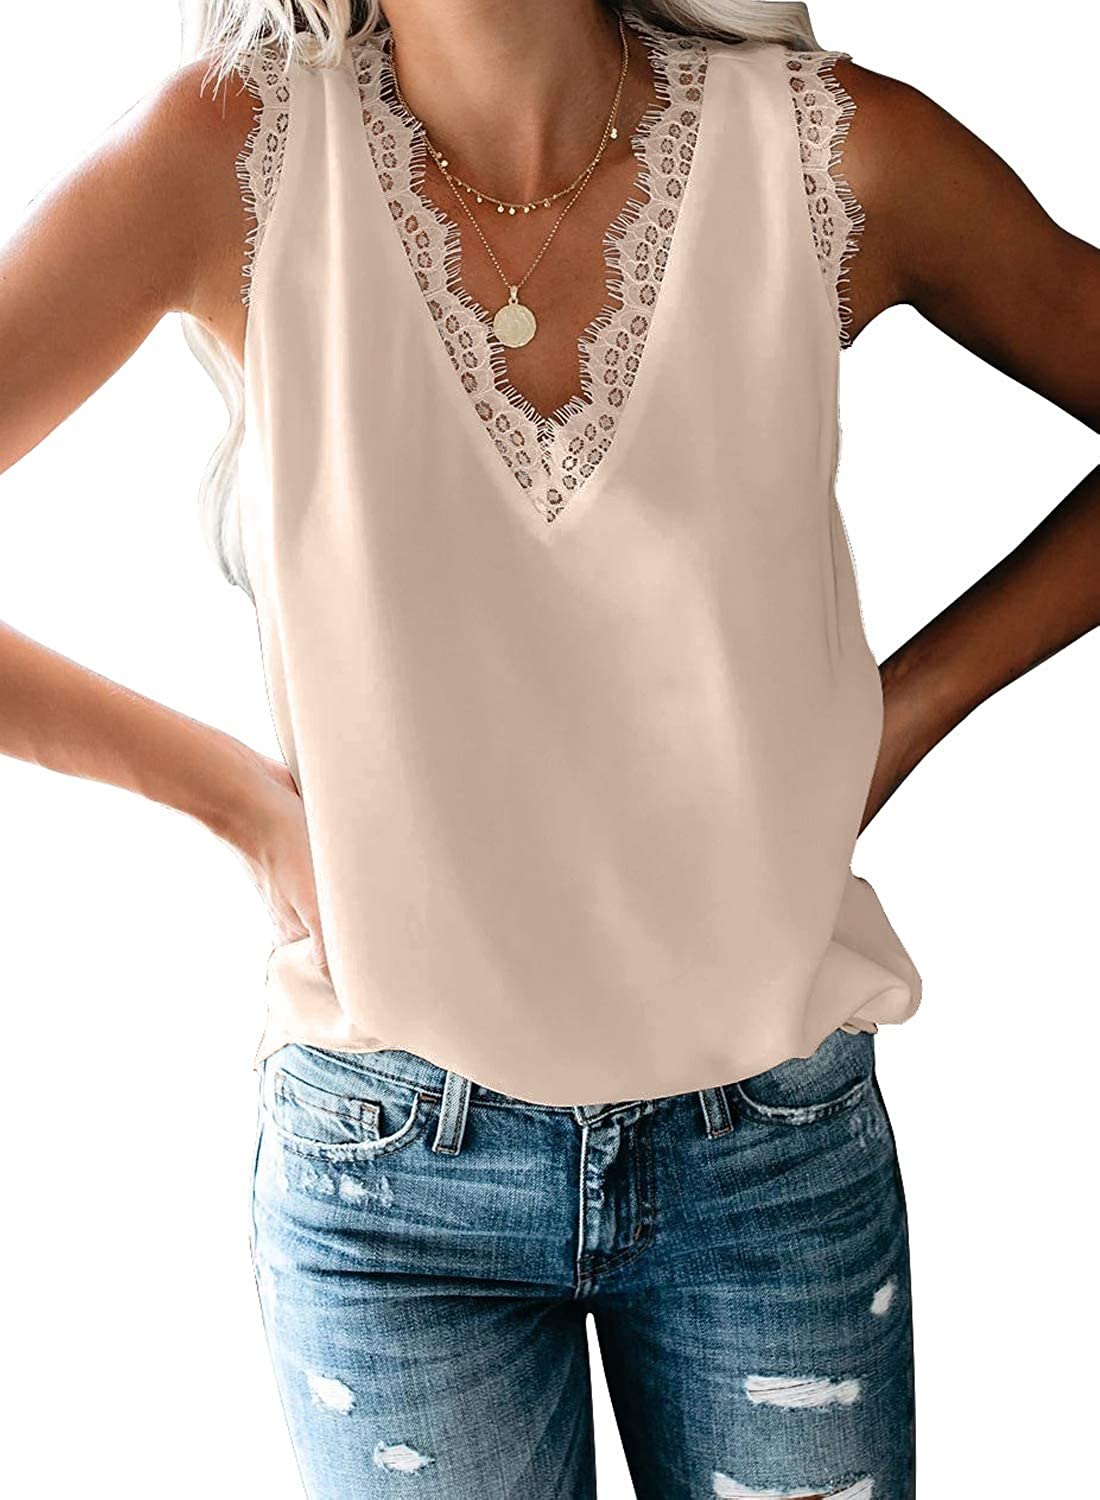 Women Casual Beach Tank Tops Ladies Lace Sheer Sleeveless Summer O Neck T-Shirt Blouse Scoop Neck